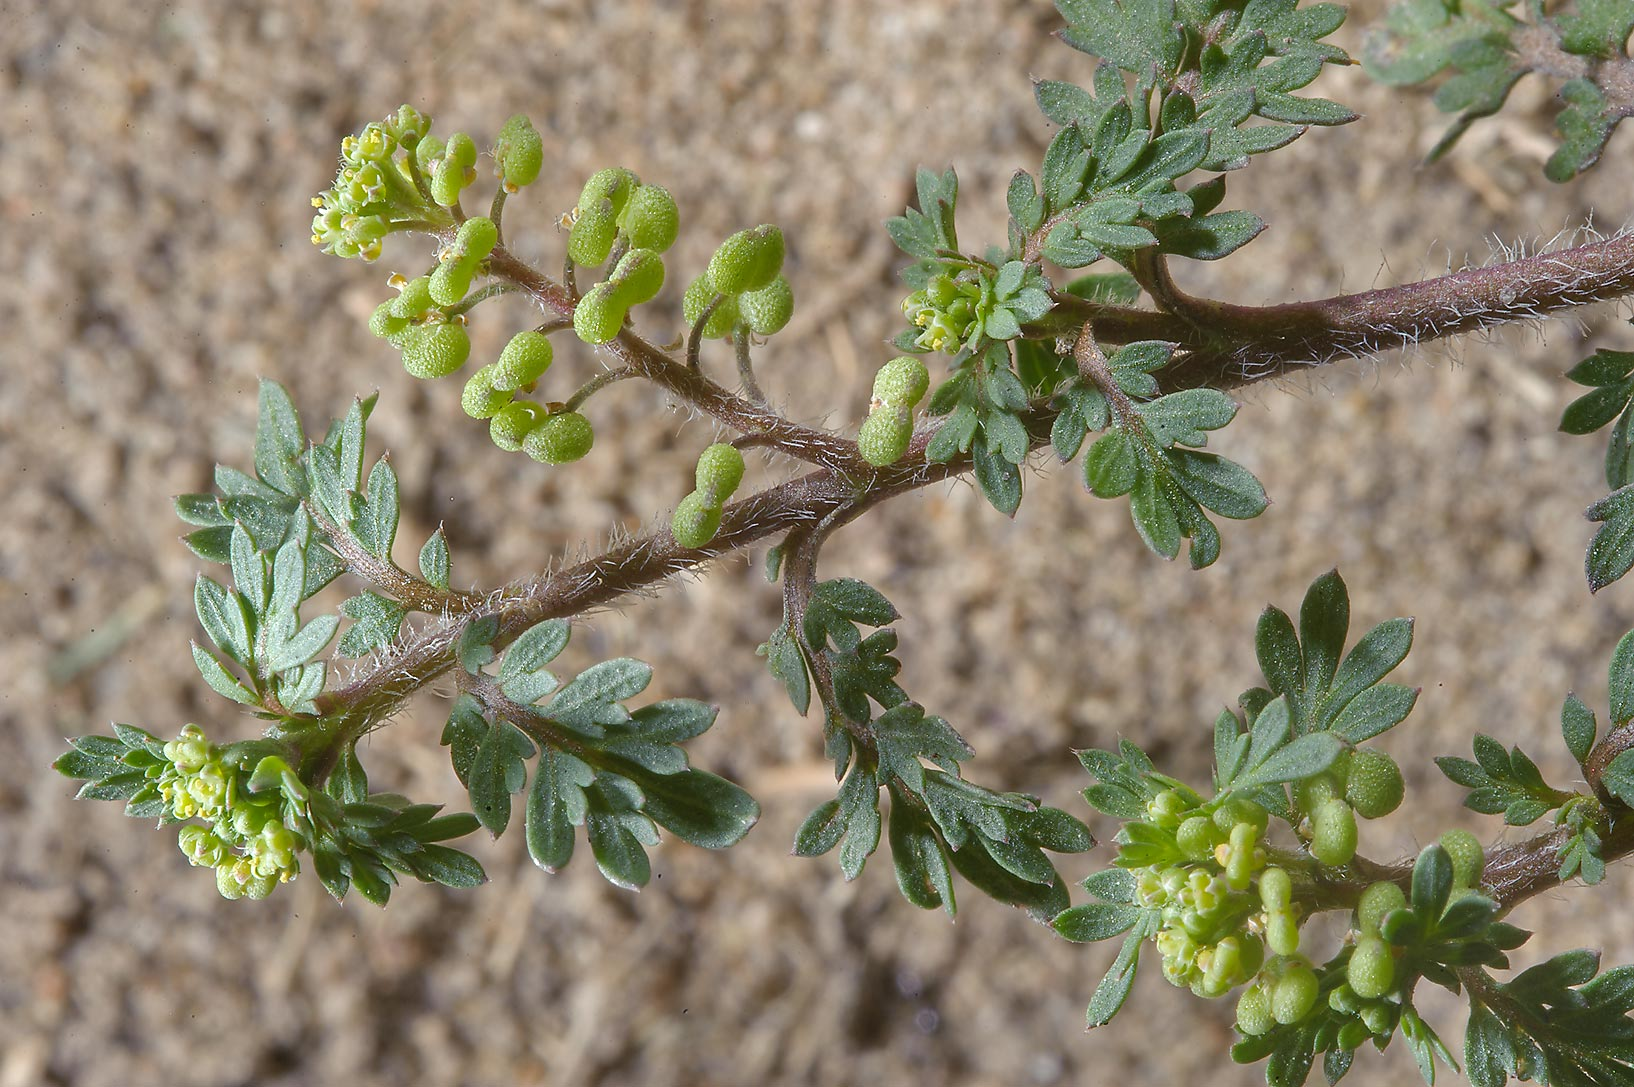 Shoot of Swine cress (Lepidium didymum) near Al Bidda Park. Doha, Qatar